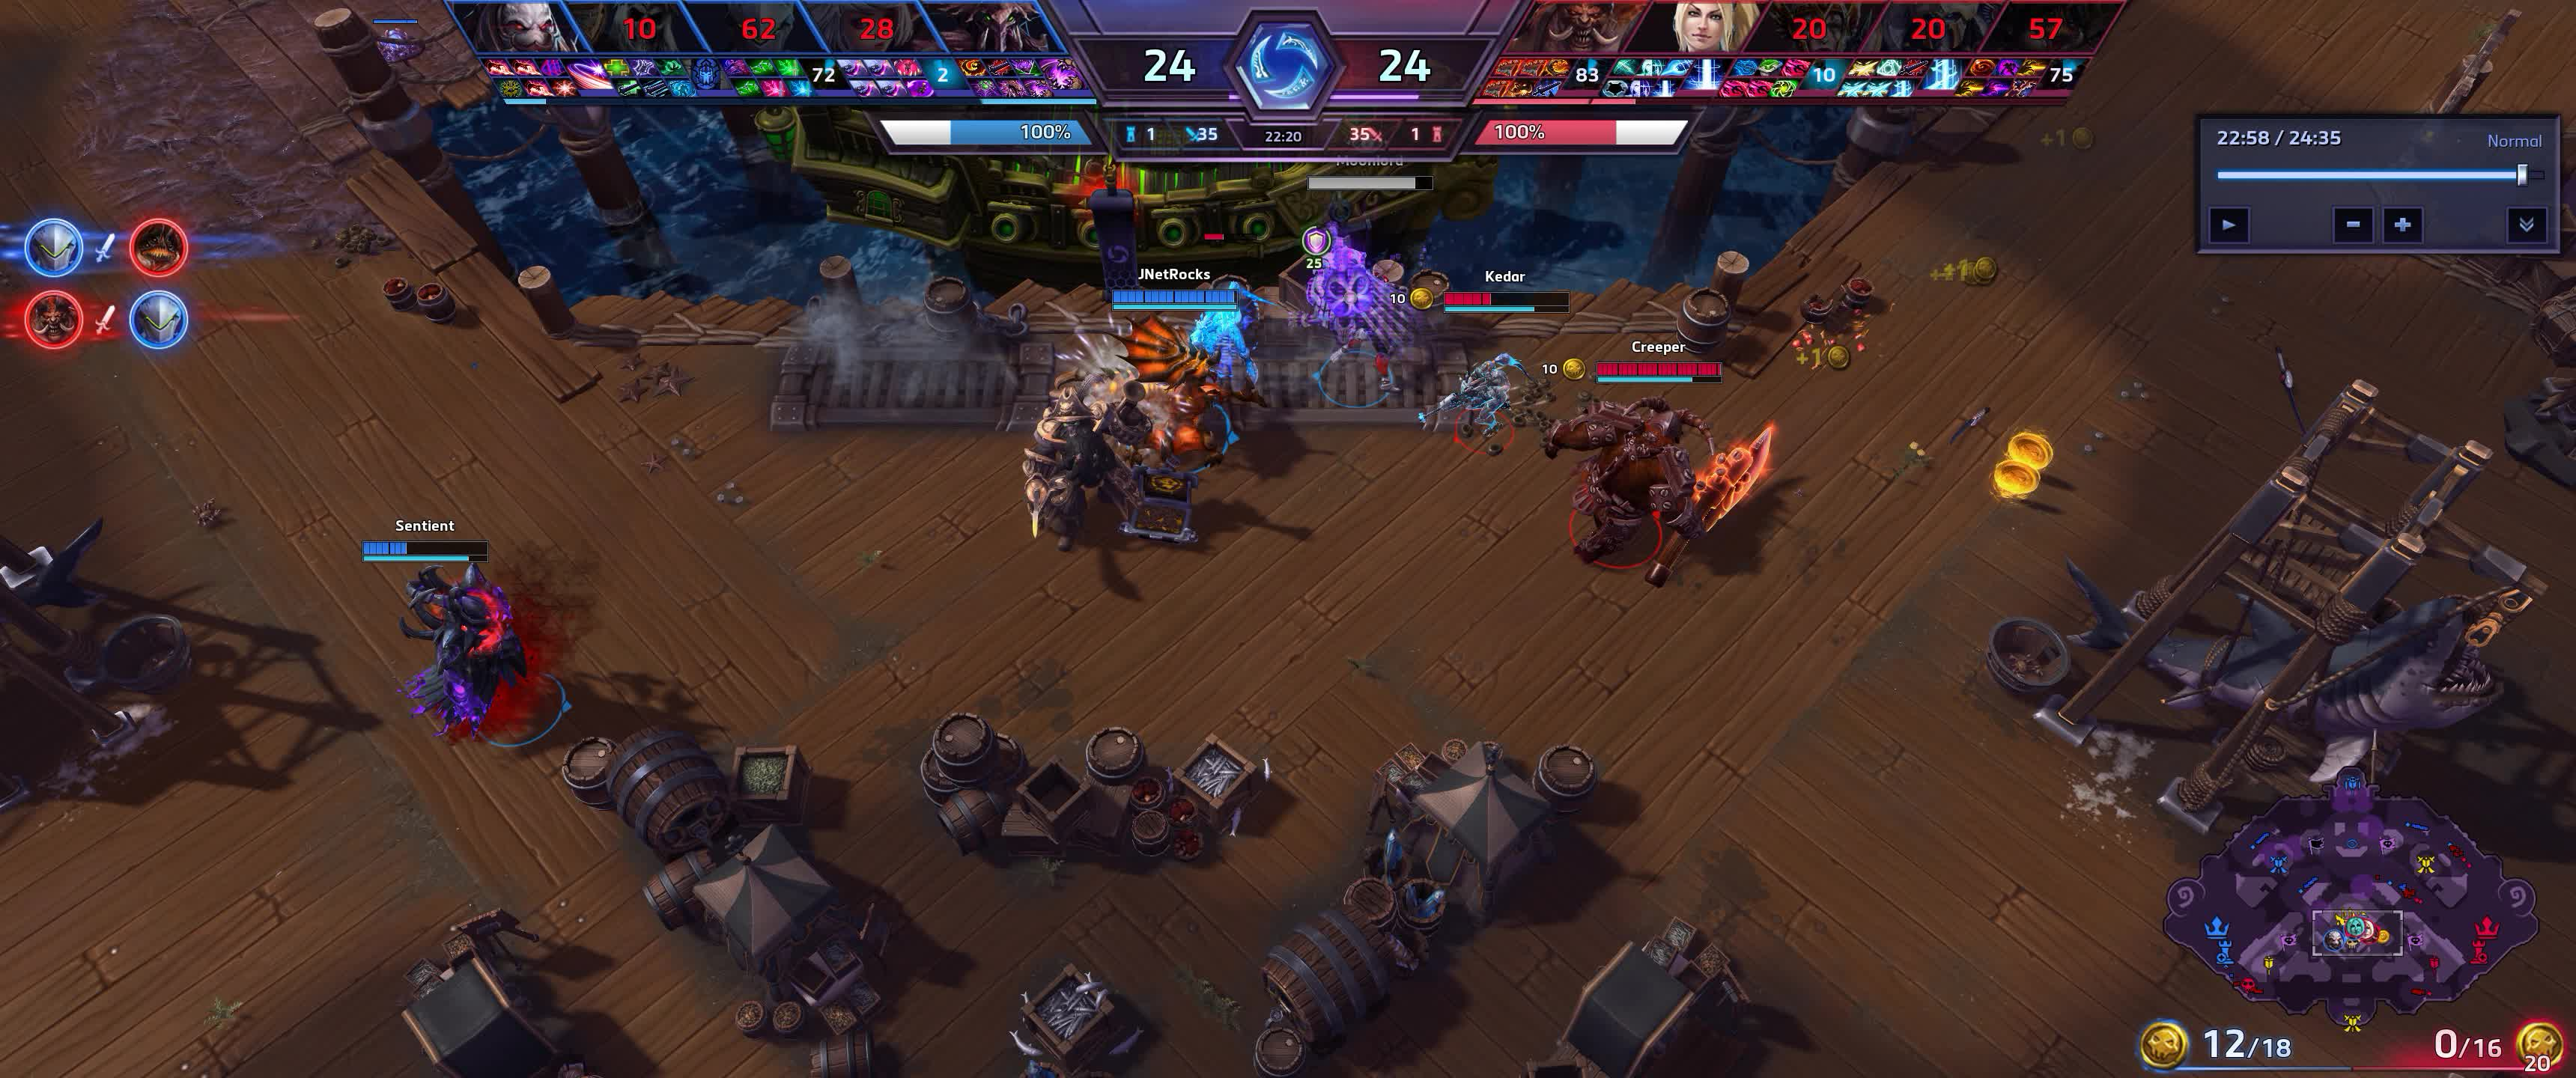 heroesofthestorm, Heroes of the Storm 2019.03.16 - 20.40.46.04 GIFs